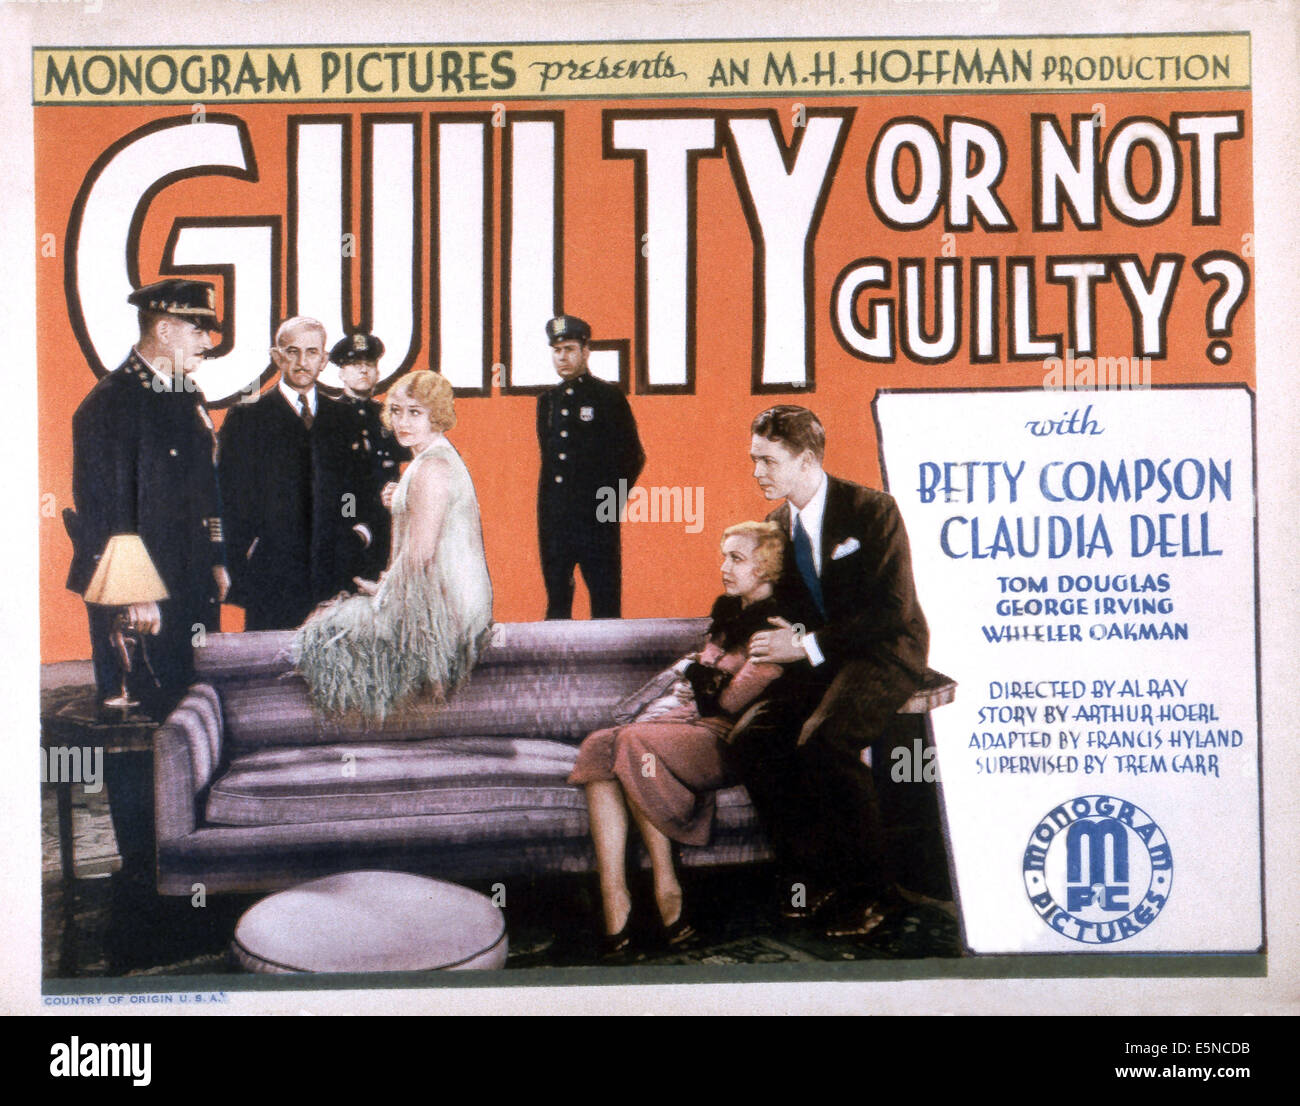 guilty or not